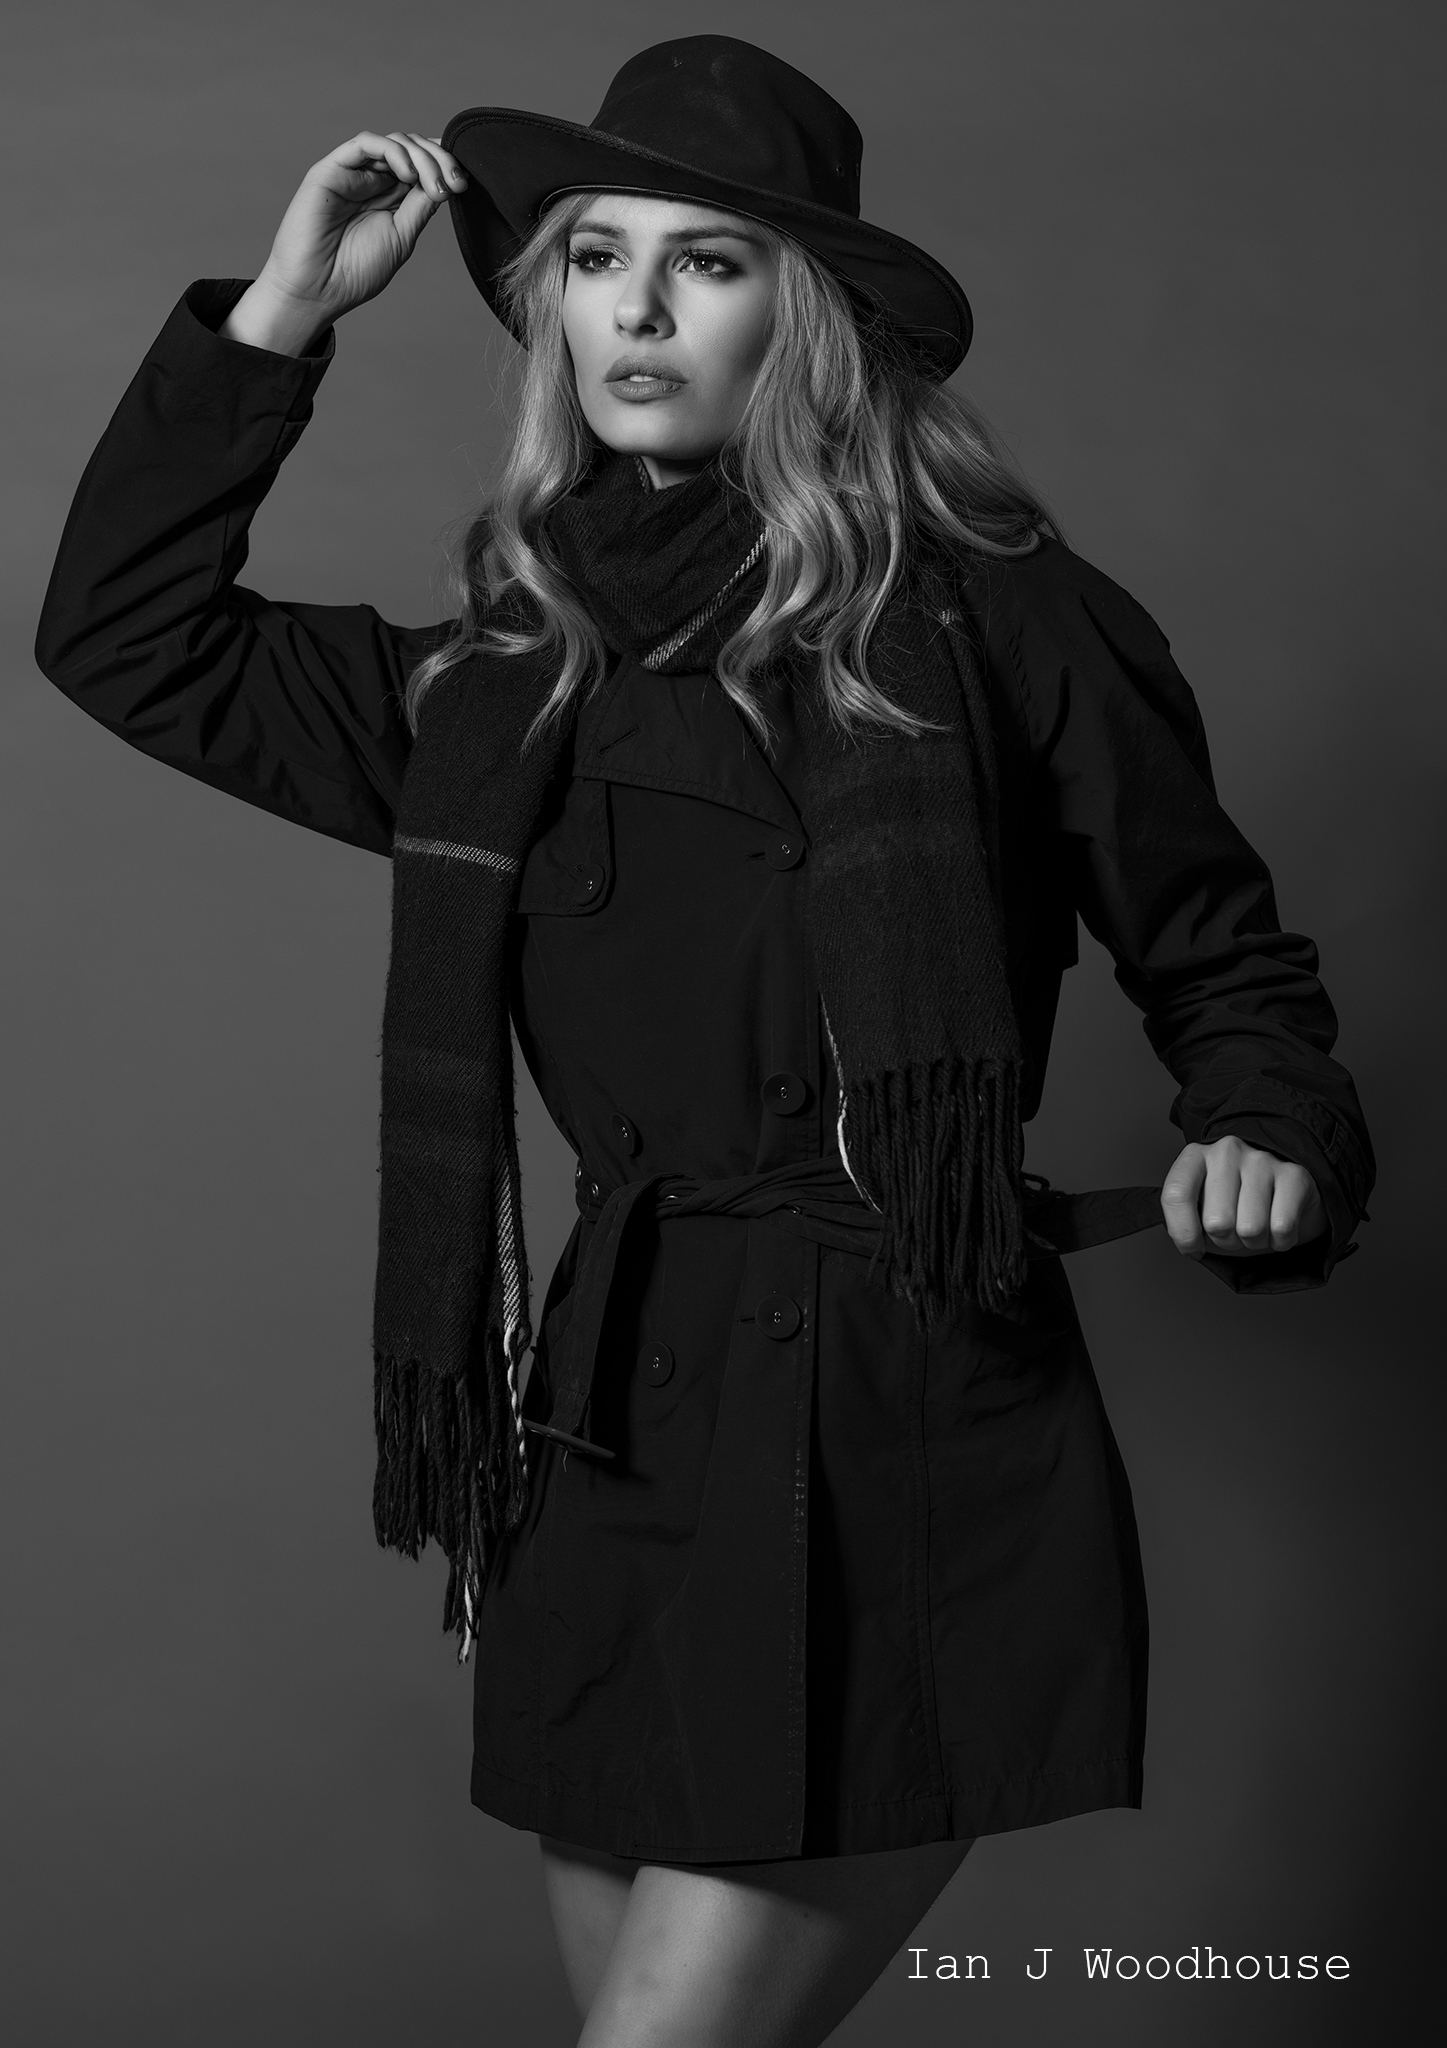 Studio black and white fashion shoot, model wearing a black rain coat and hat